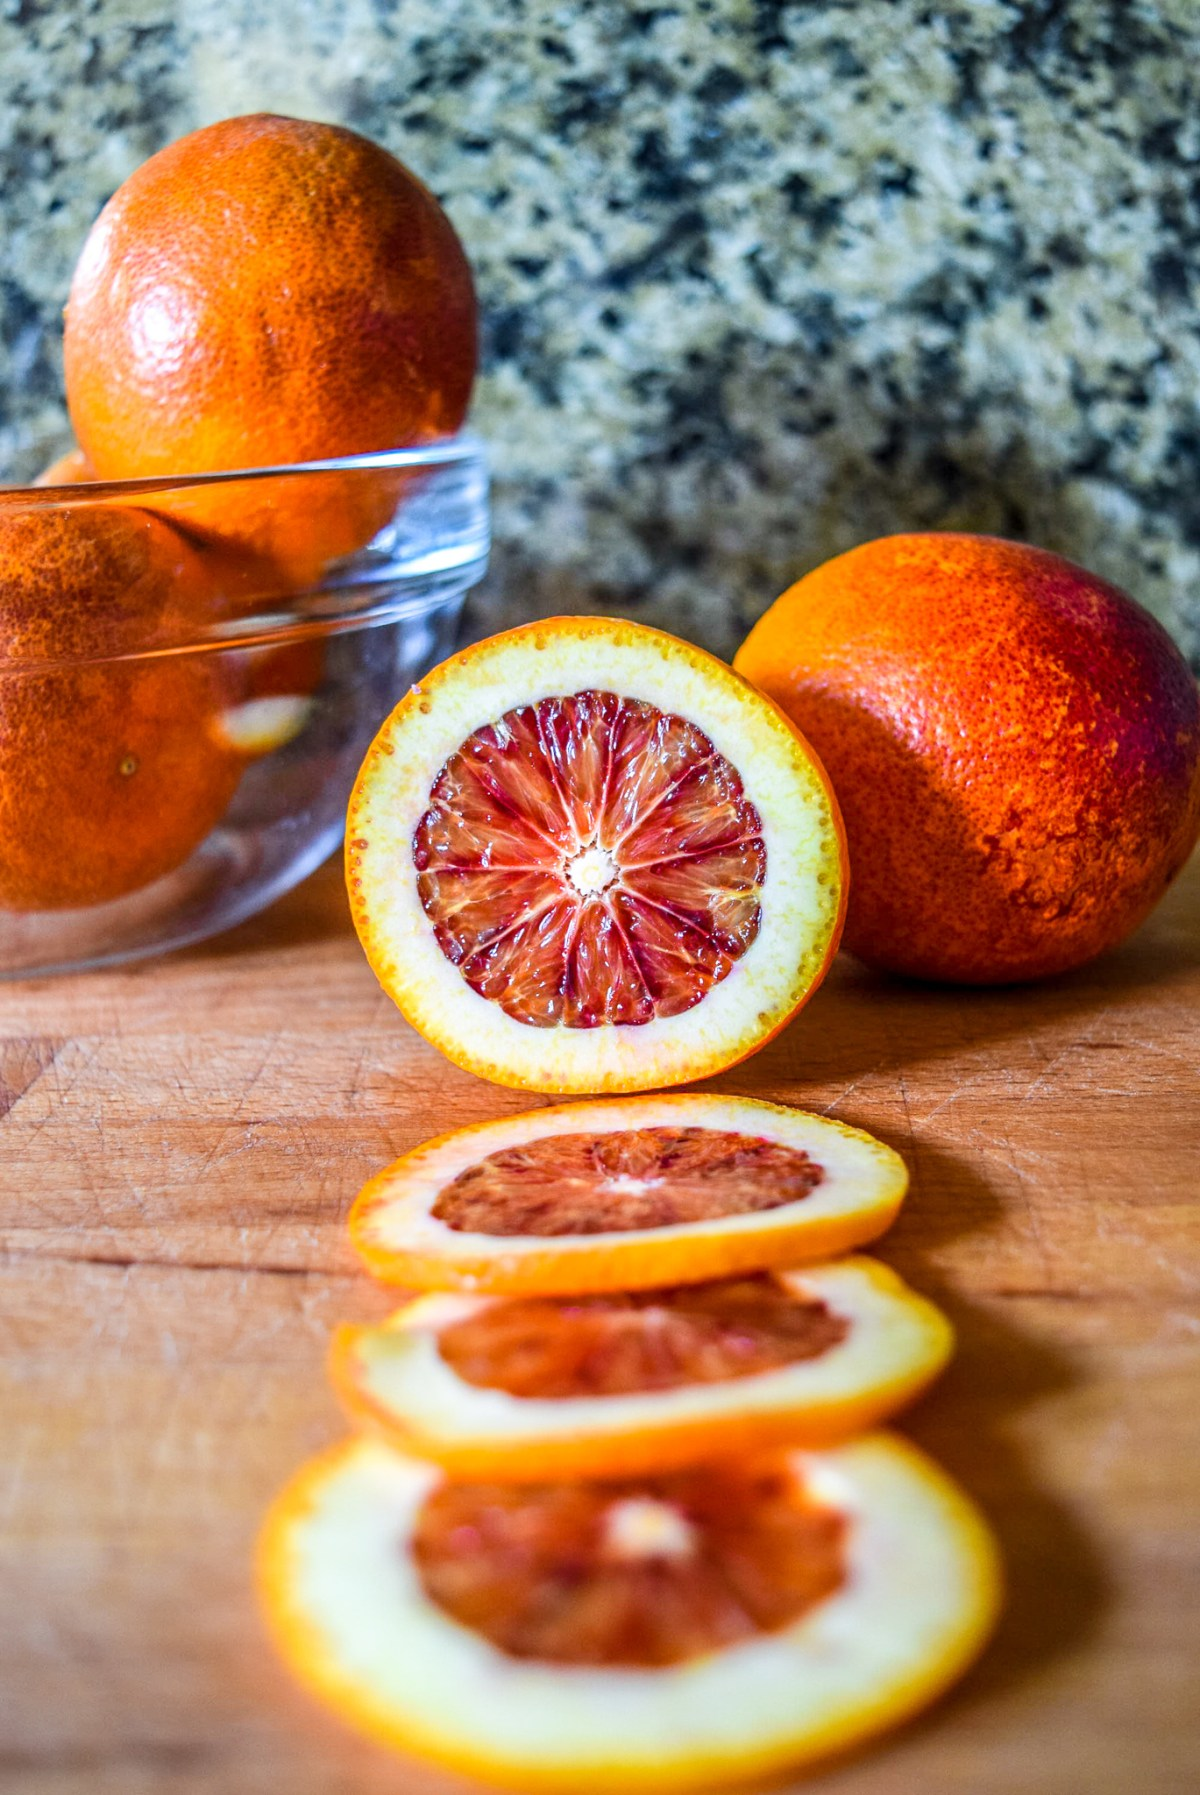 Sliced blood orange rounds in preparation for candying from front